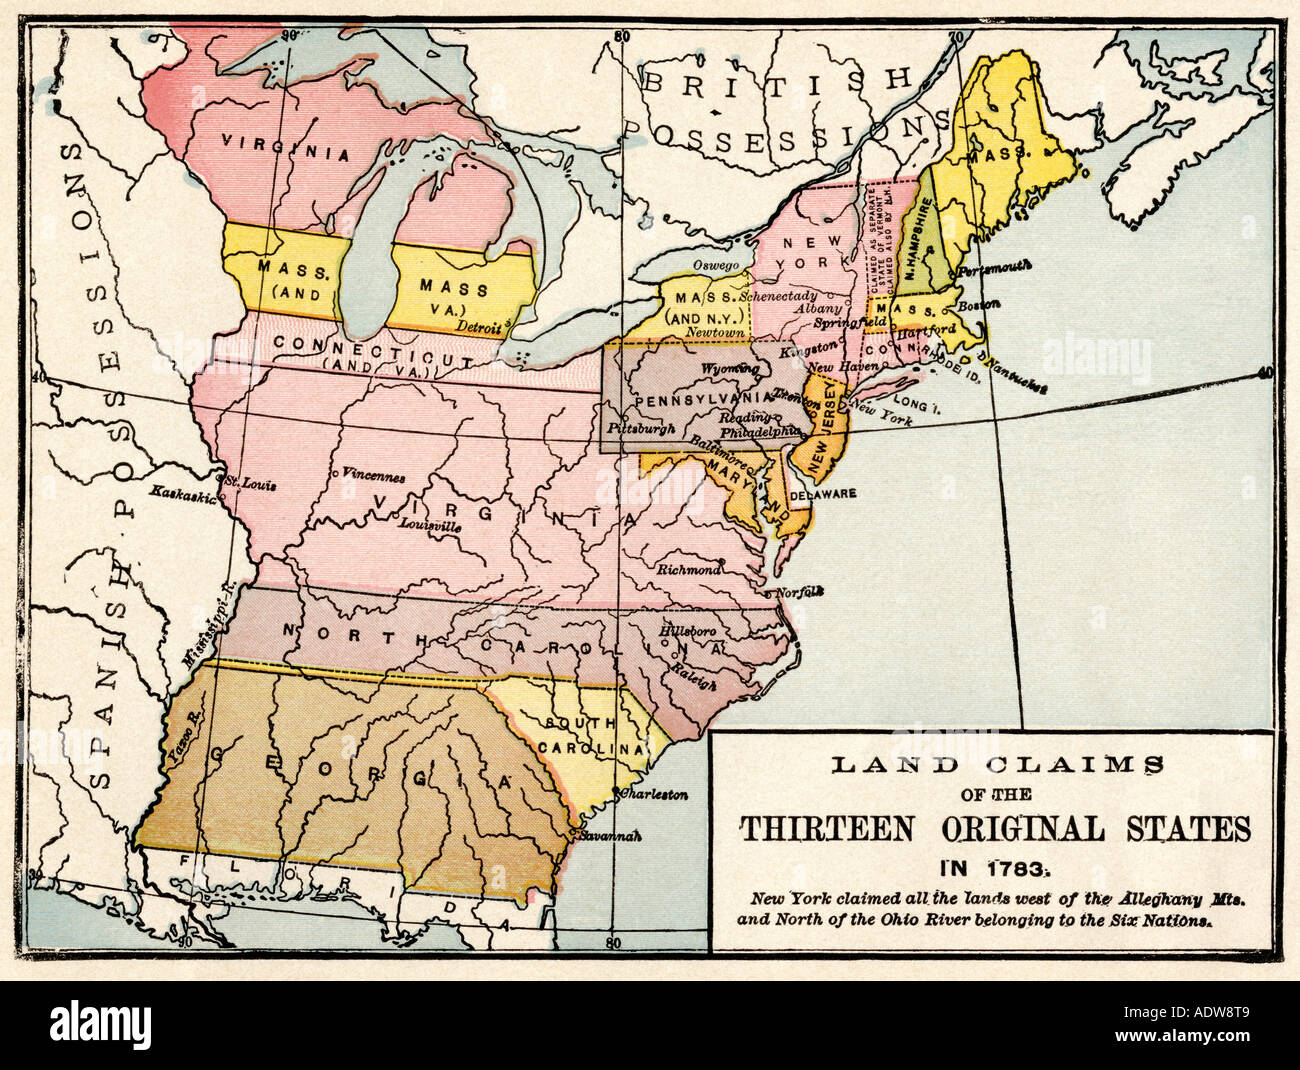 13 Colonies And Map Stock Photos & 13 Colonies And Map Stock ...